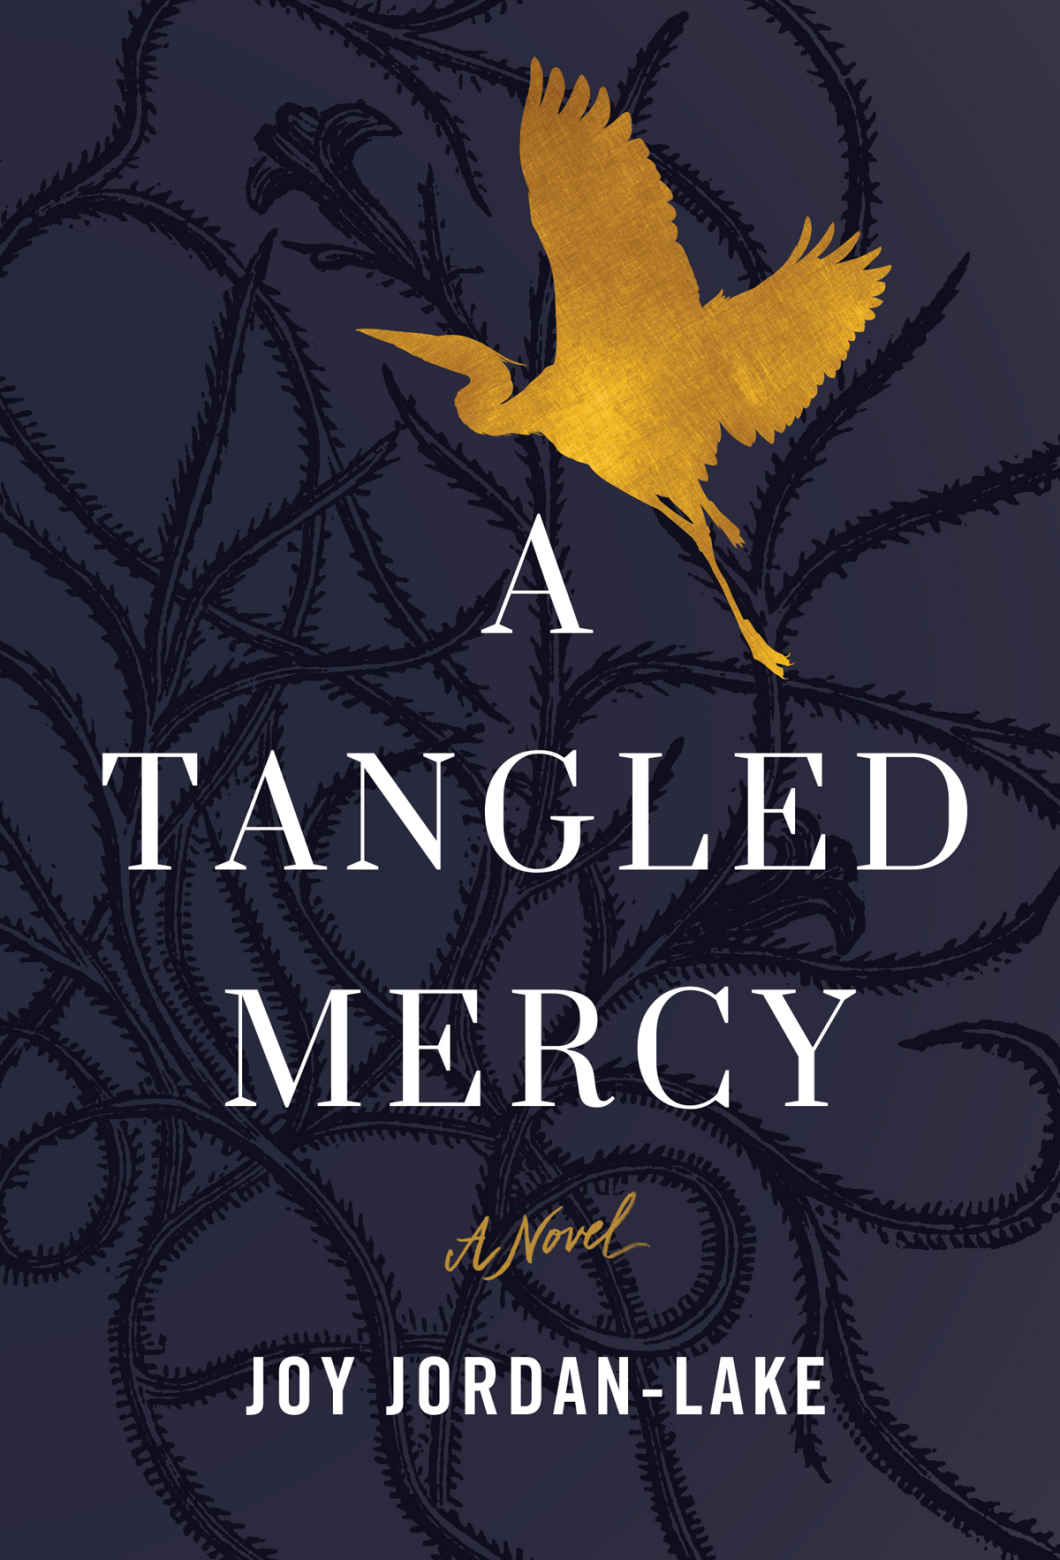 A Tangled Mercy: A Novel - Joy Jordan-Lake [kindle] [mobi]